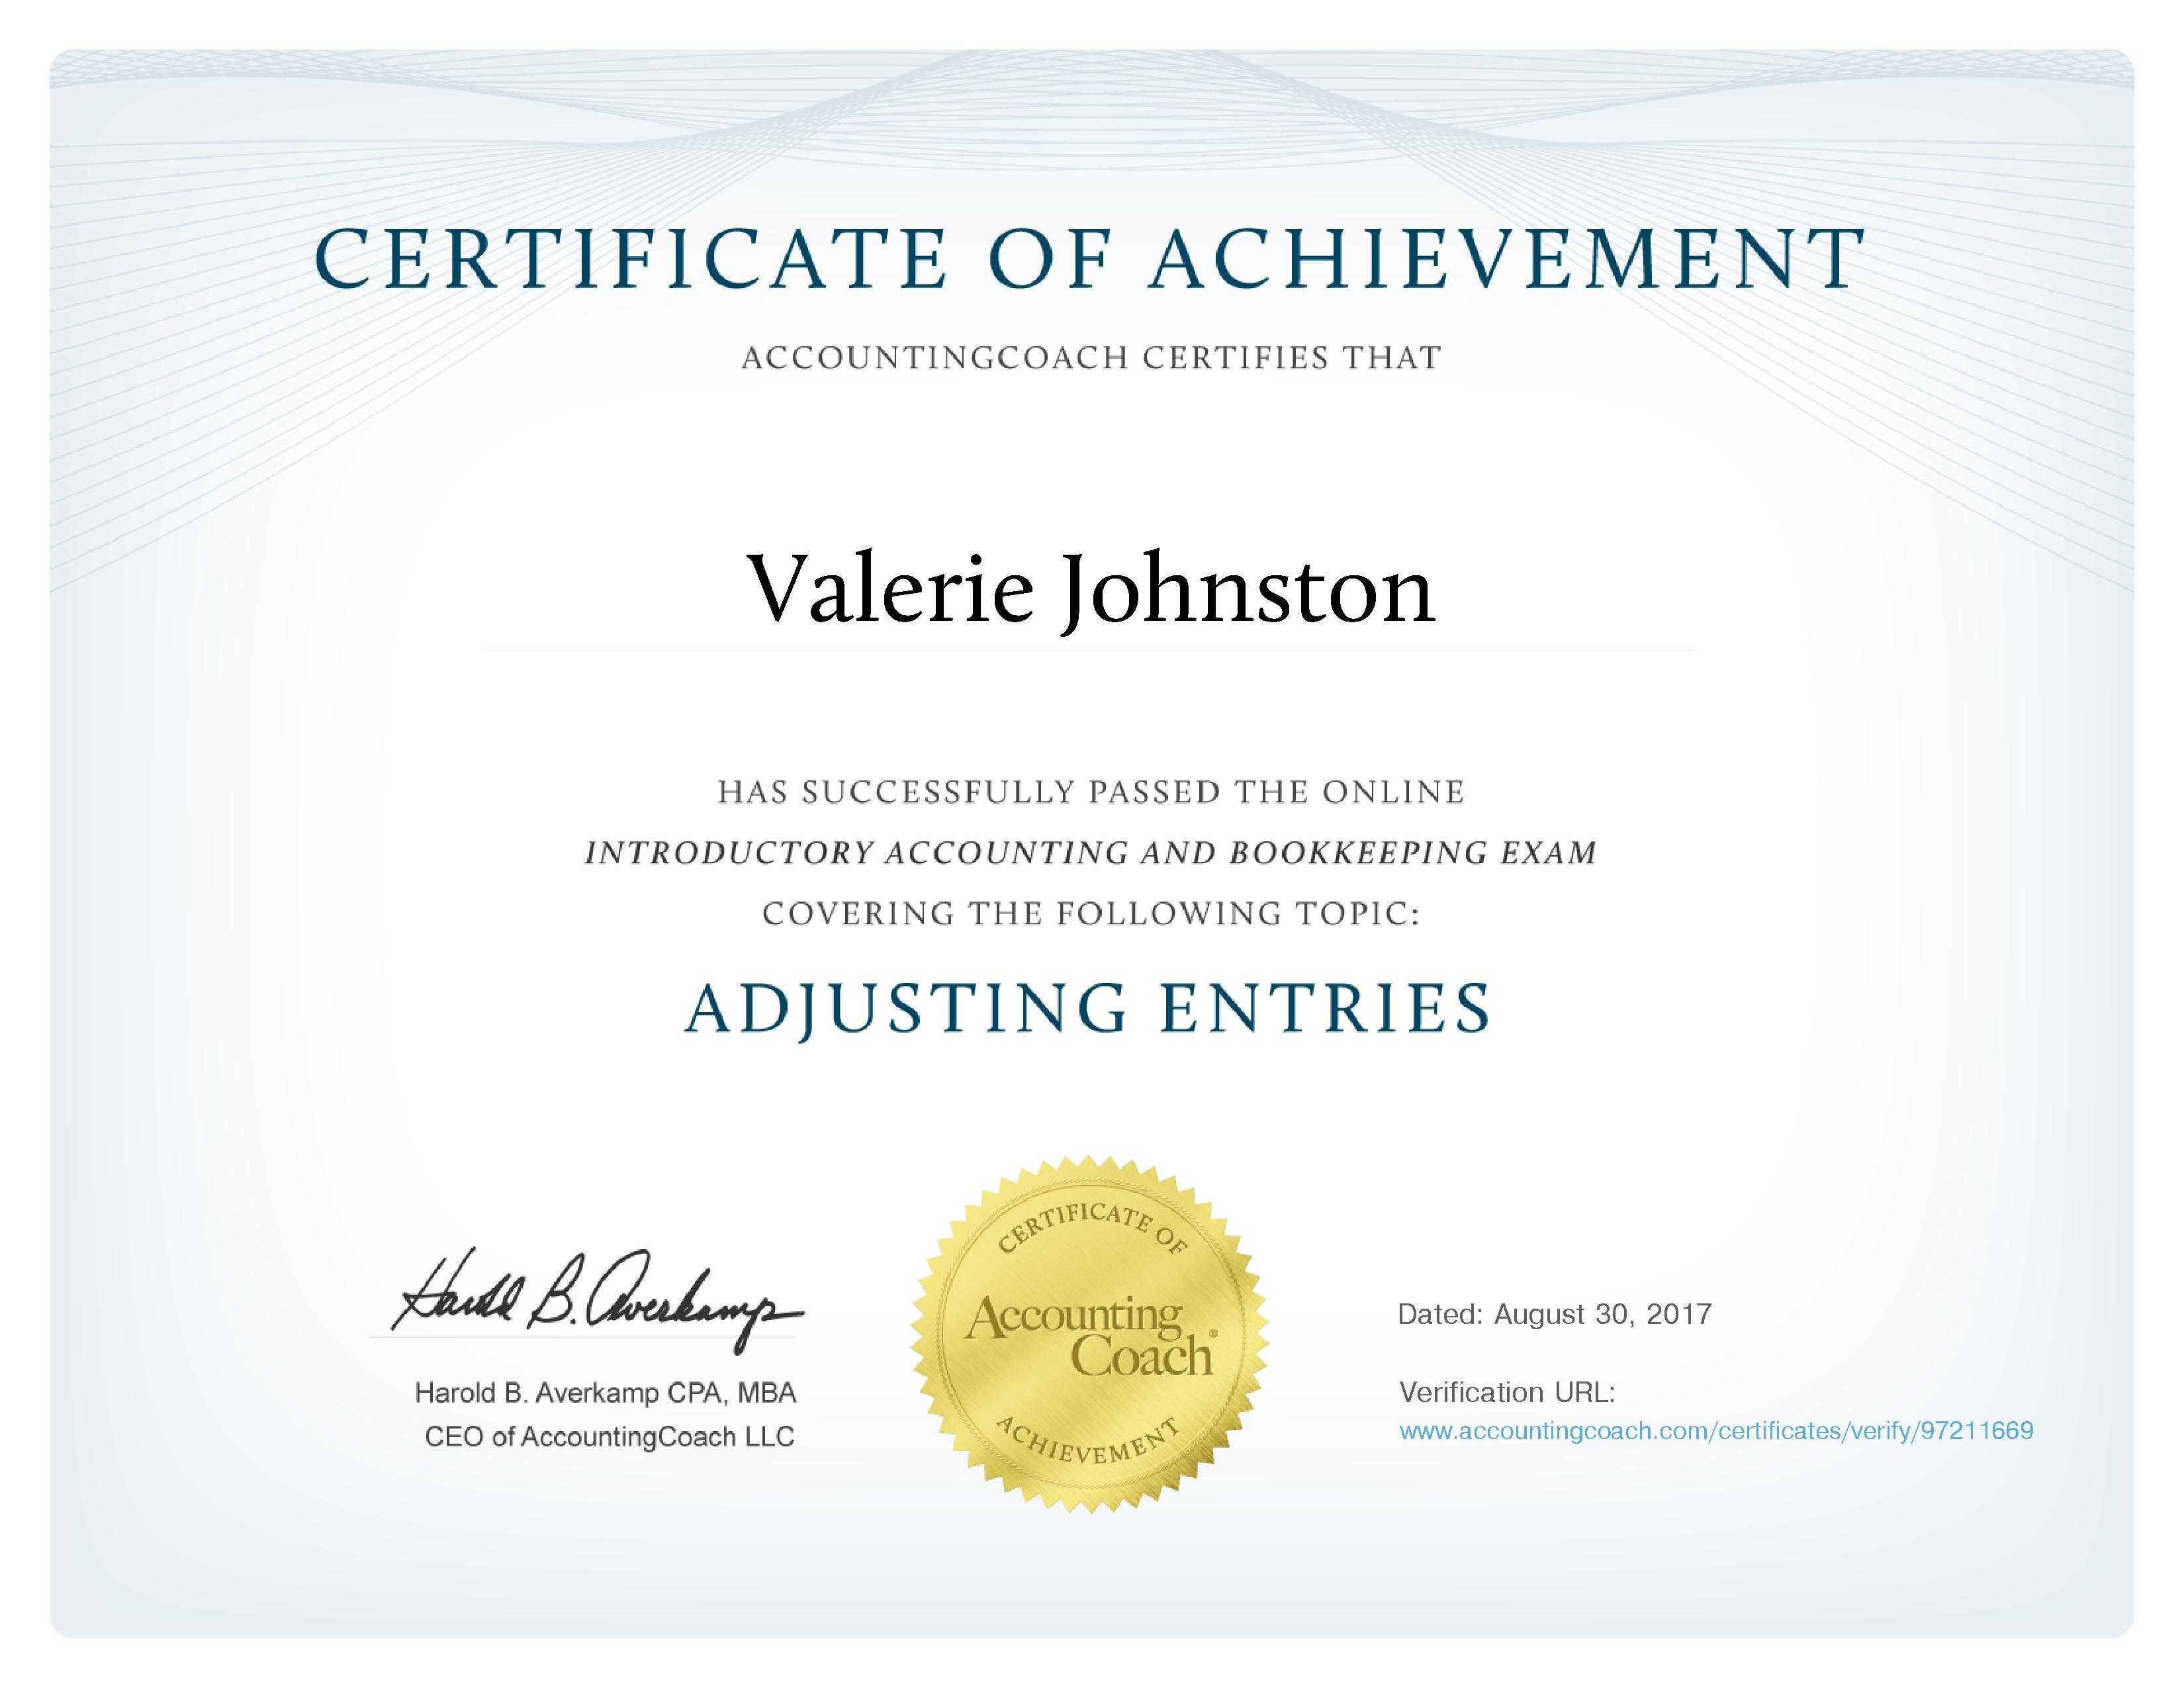 Southern Belle Bookkeeping Valerie Johnston Aicb